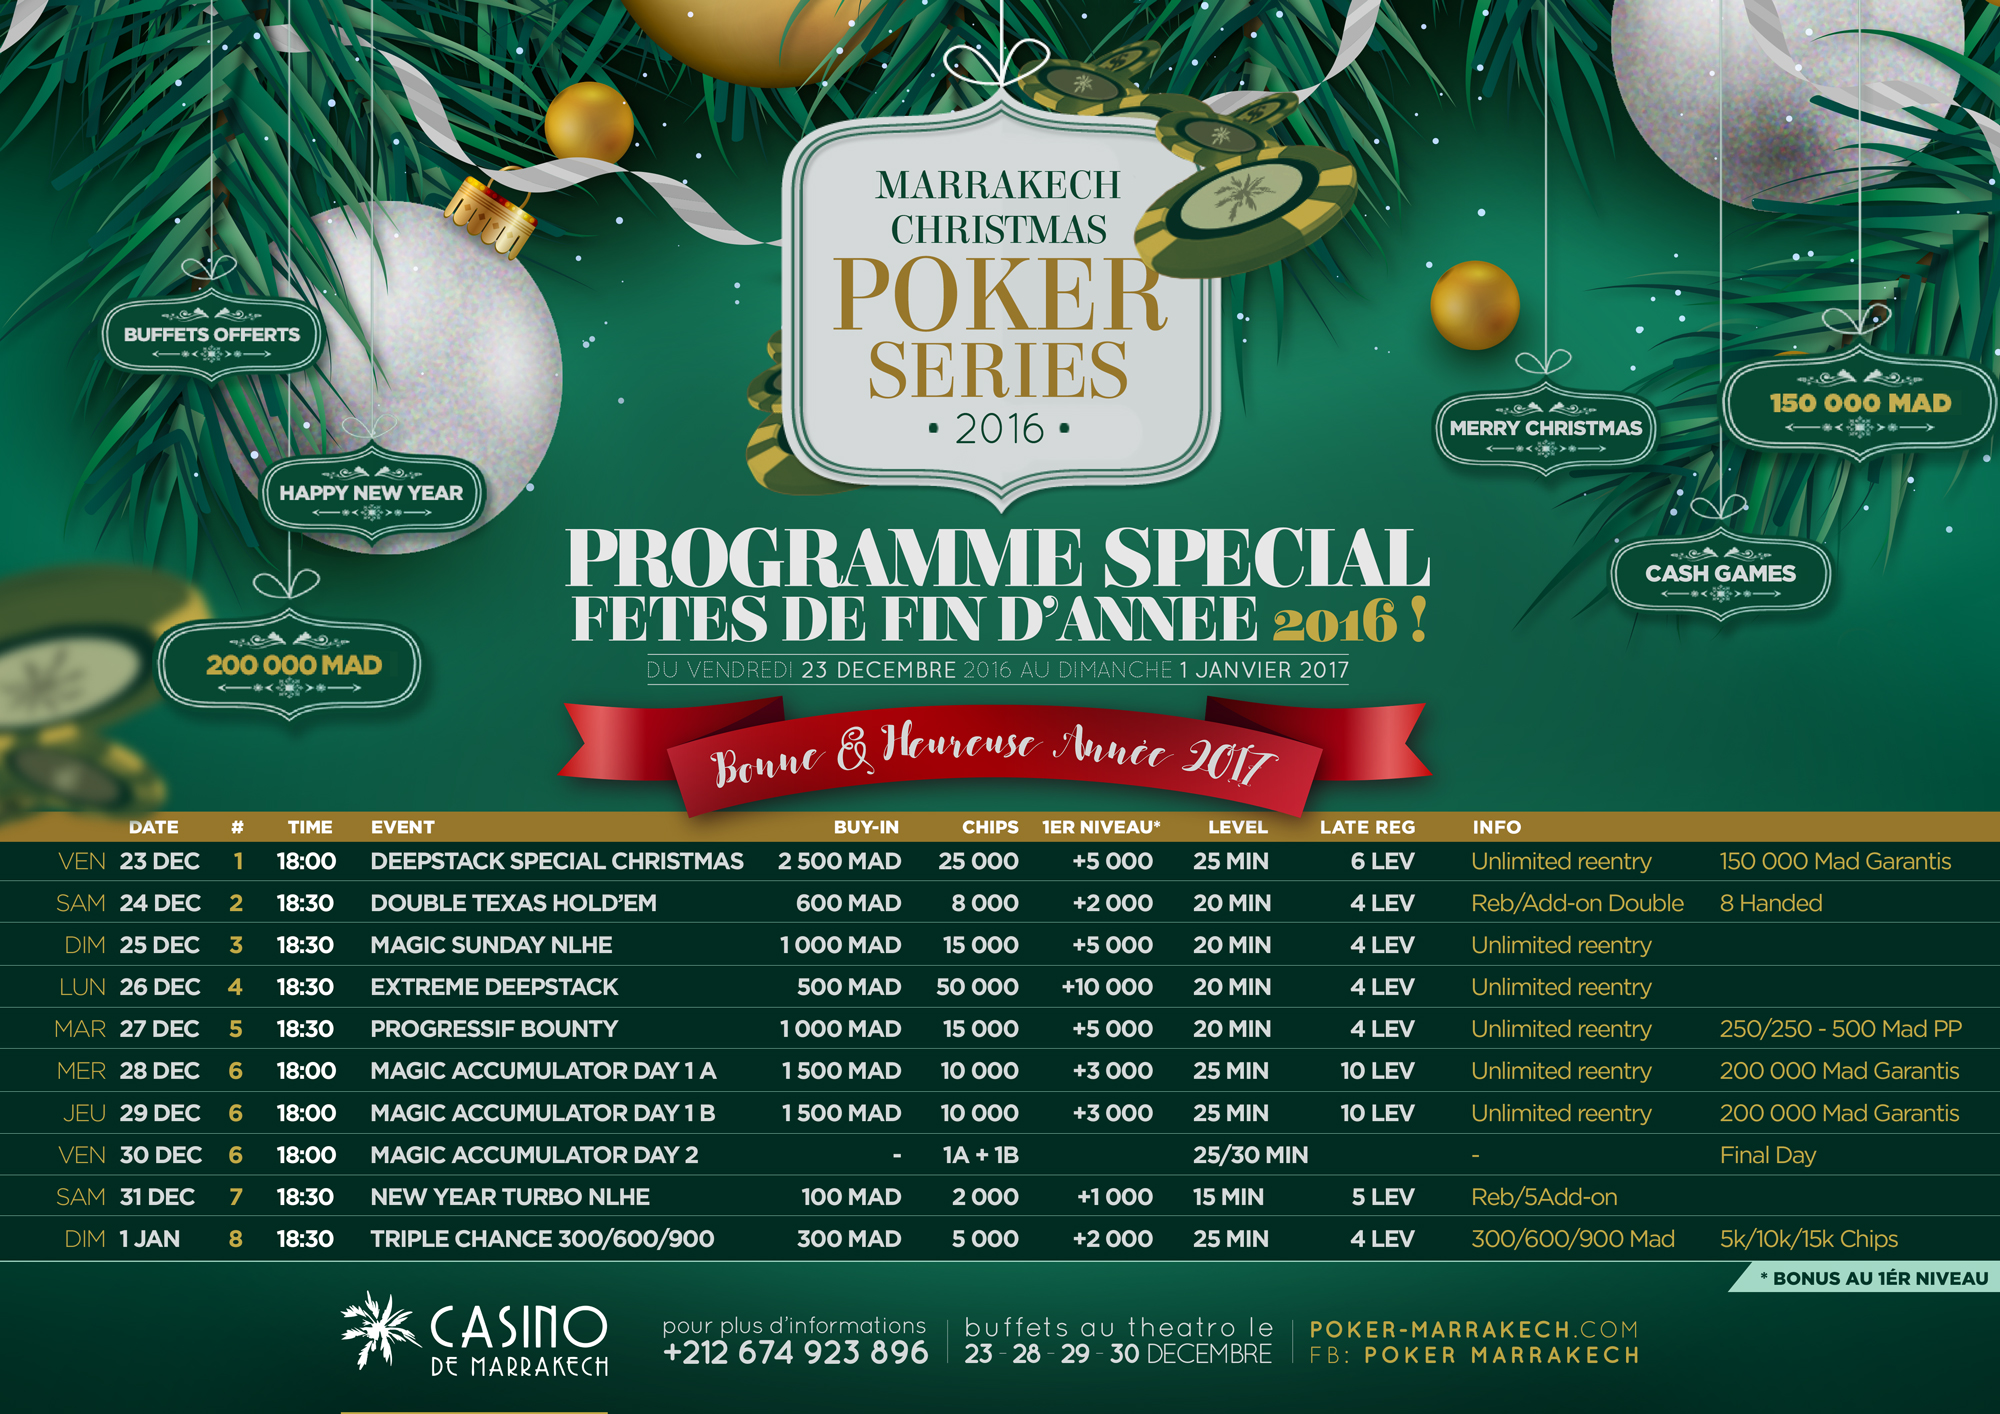 prg-christmas-poker-a3